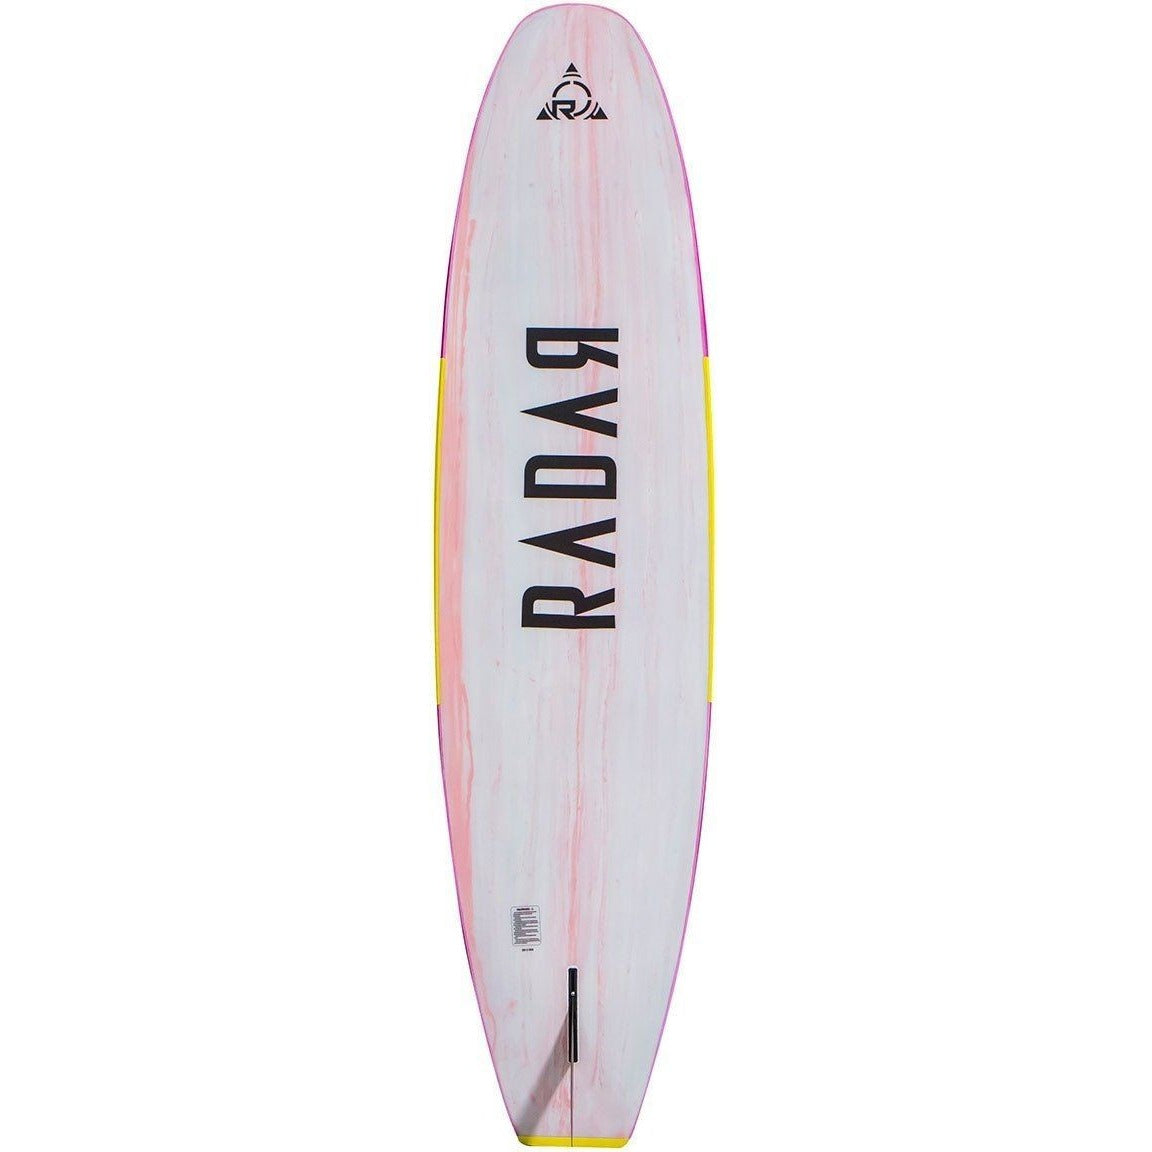 Radar Cadence Women's SUP - Store Pick Up Only - 88 Gear